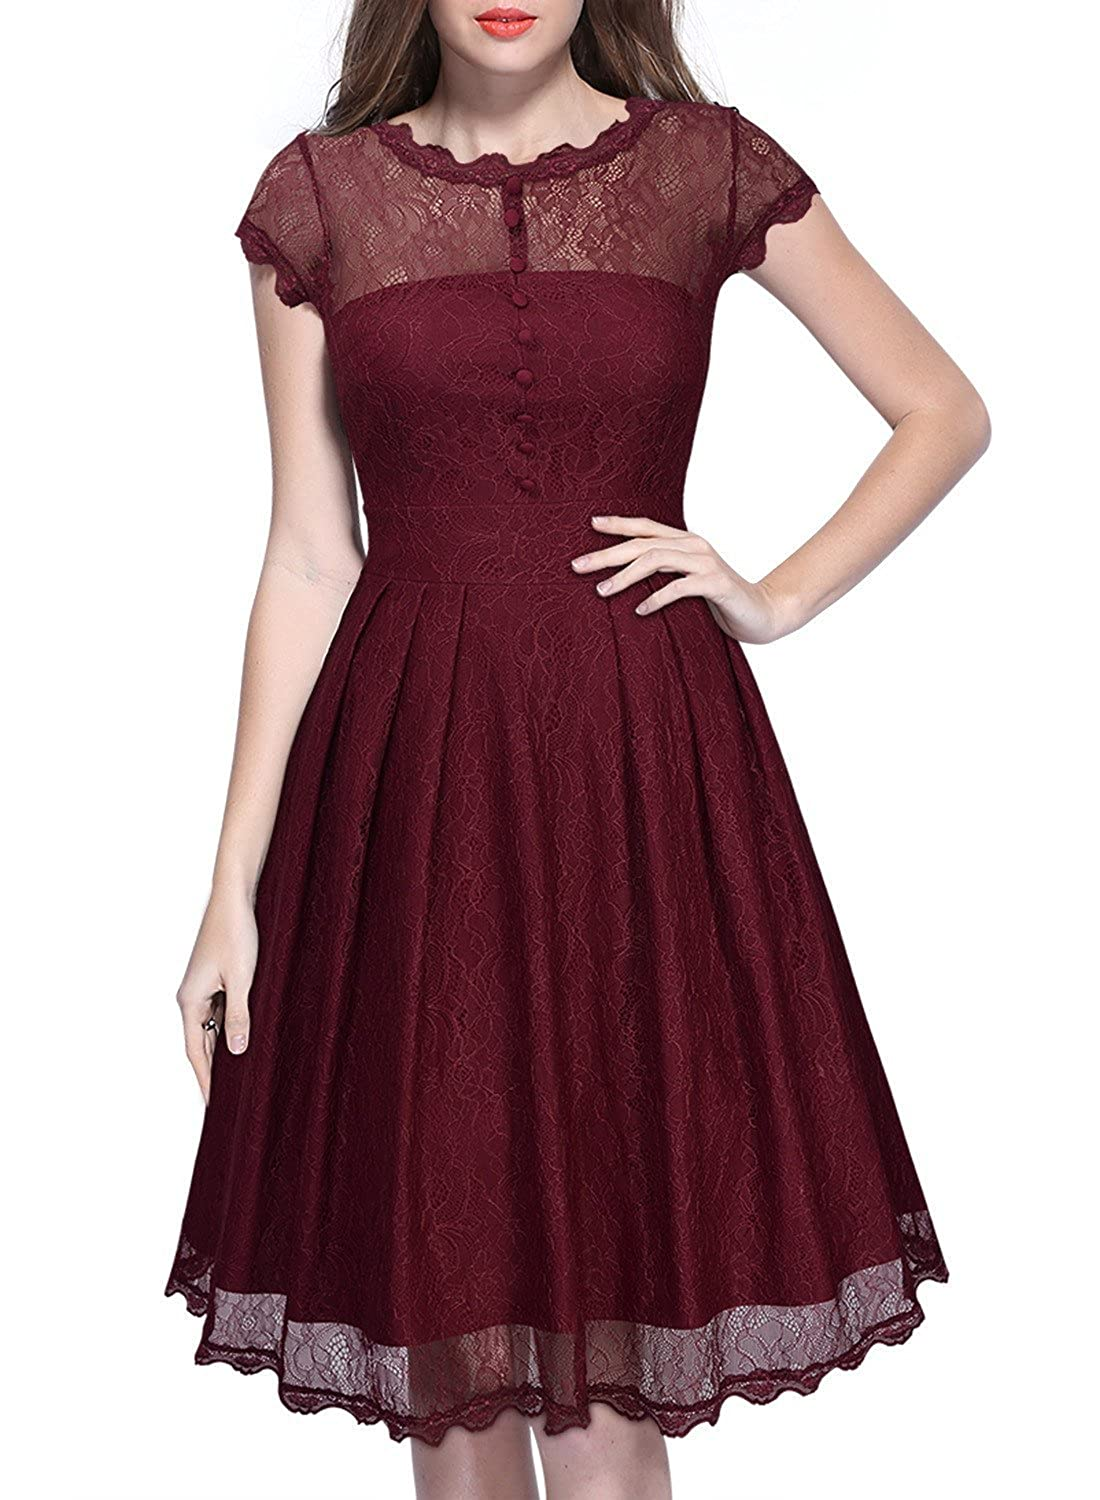 TowerTree Women's Floral Lace Cap Sleeve Vintage Swing Bridesmaid A Line Dress